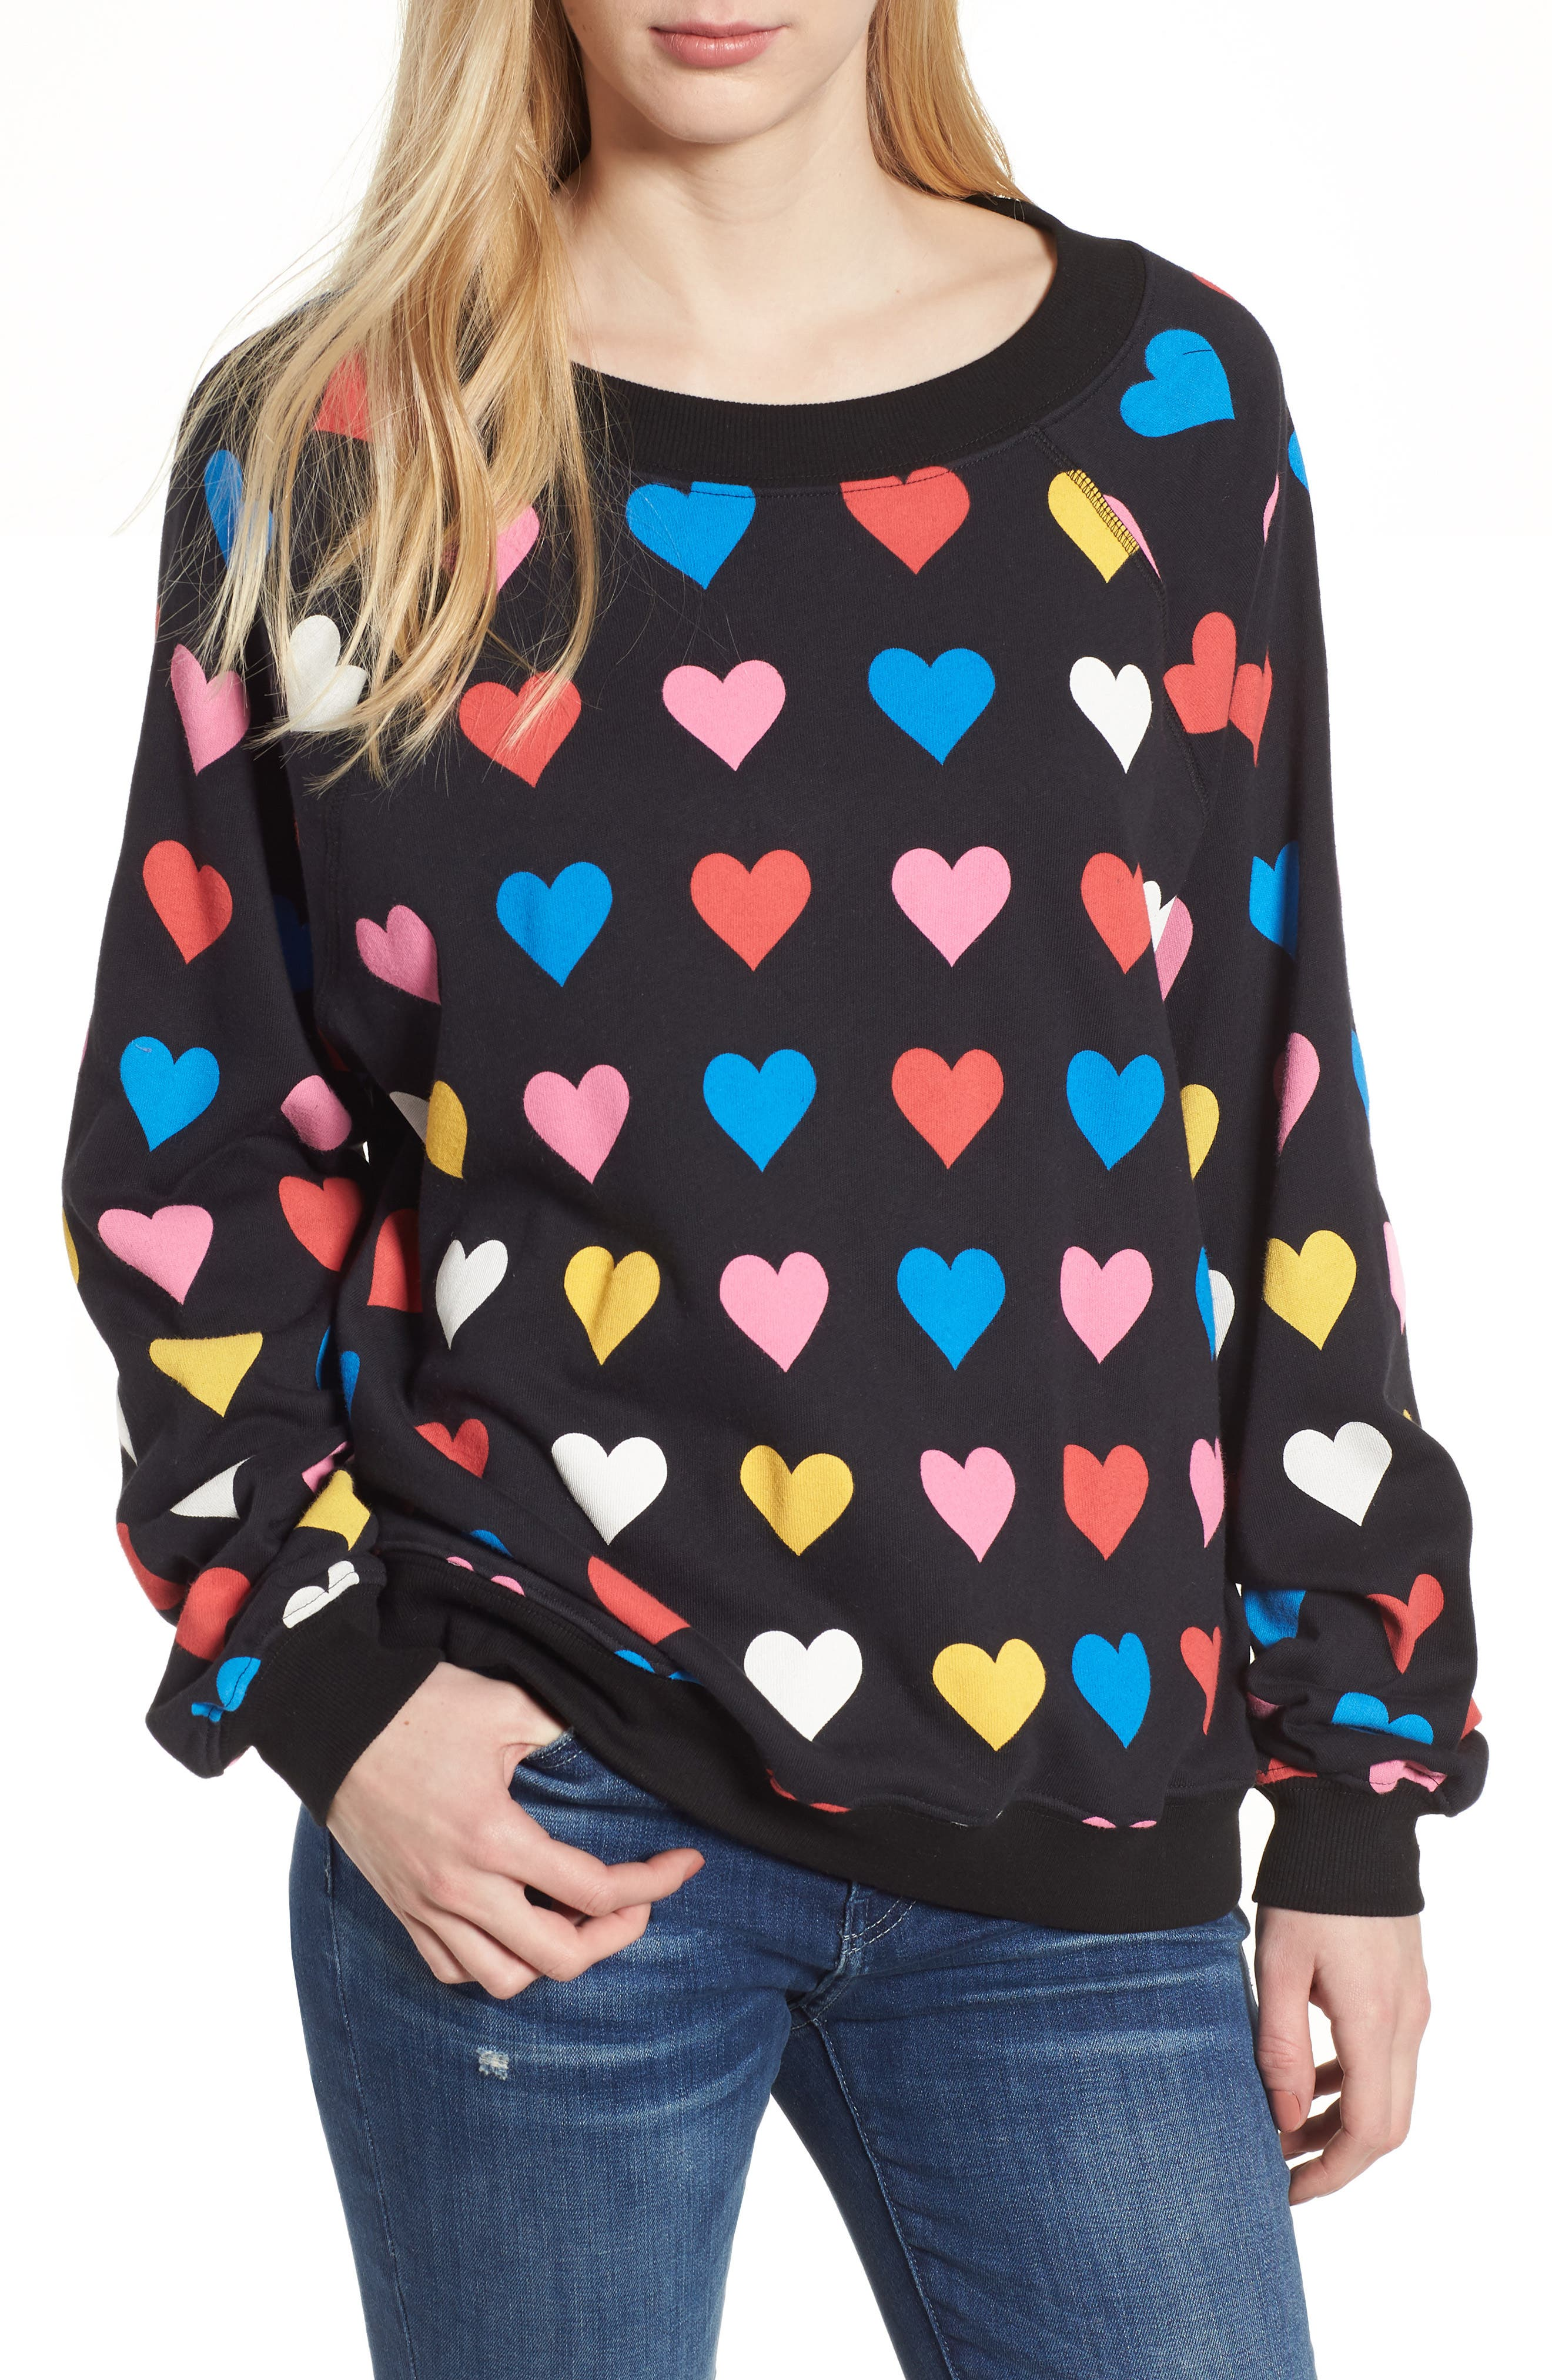 Have a Heart Sommers Sweatshirt,                         Main,                         color, Black